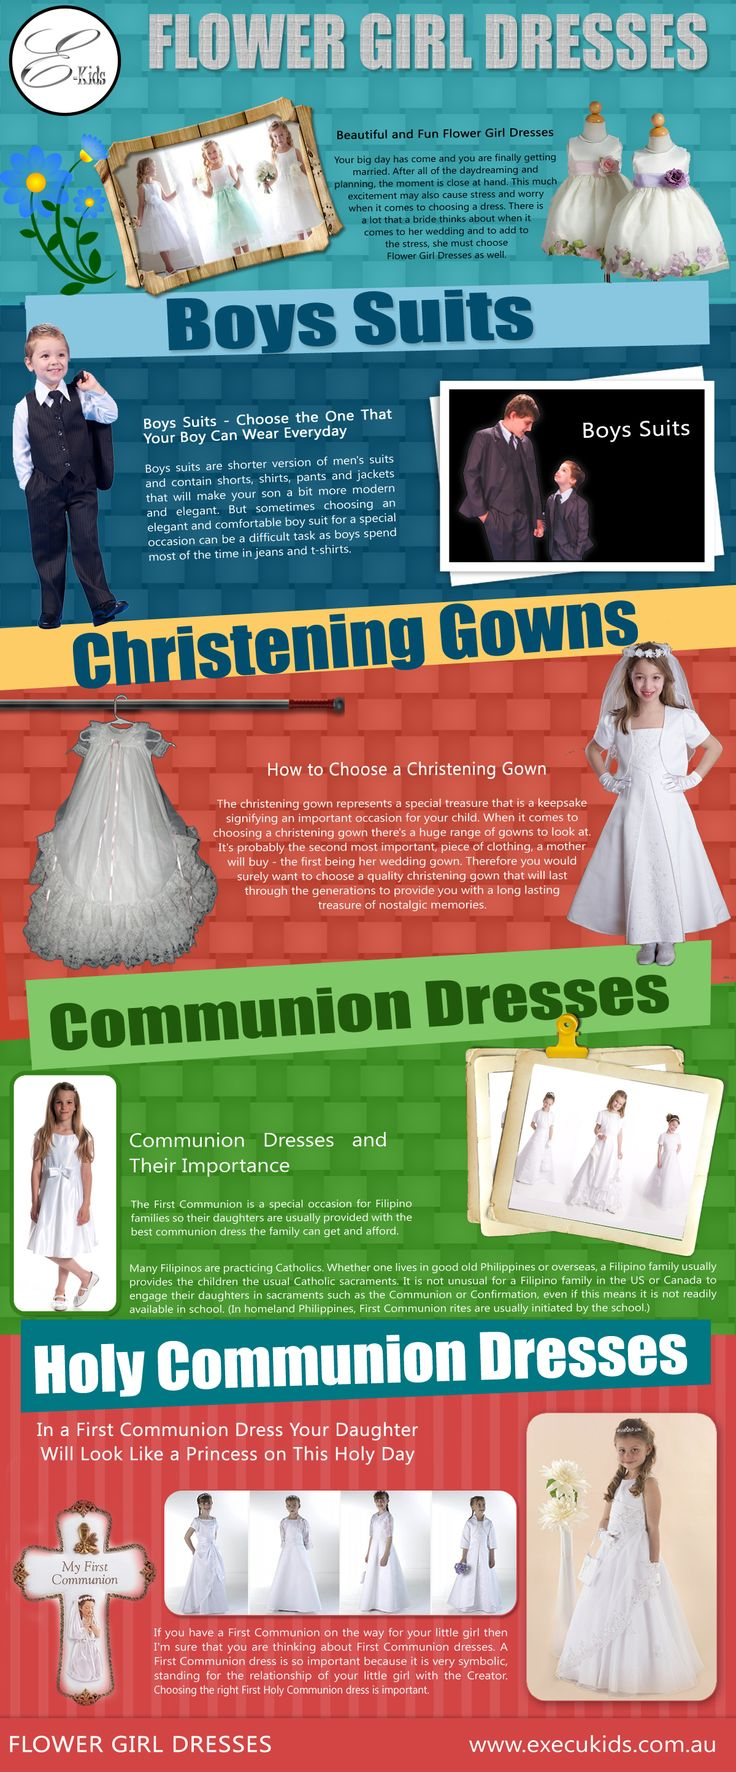 Thus, whatever the financial state in life, families prepare what they can for daughters to look their Church best. Click this site http://execukids.com.au/ for more information on Communion Dresses. They buy them the best design first Communion Dresses to make their day special and memorable.